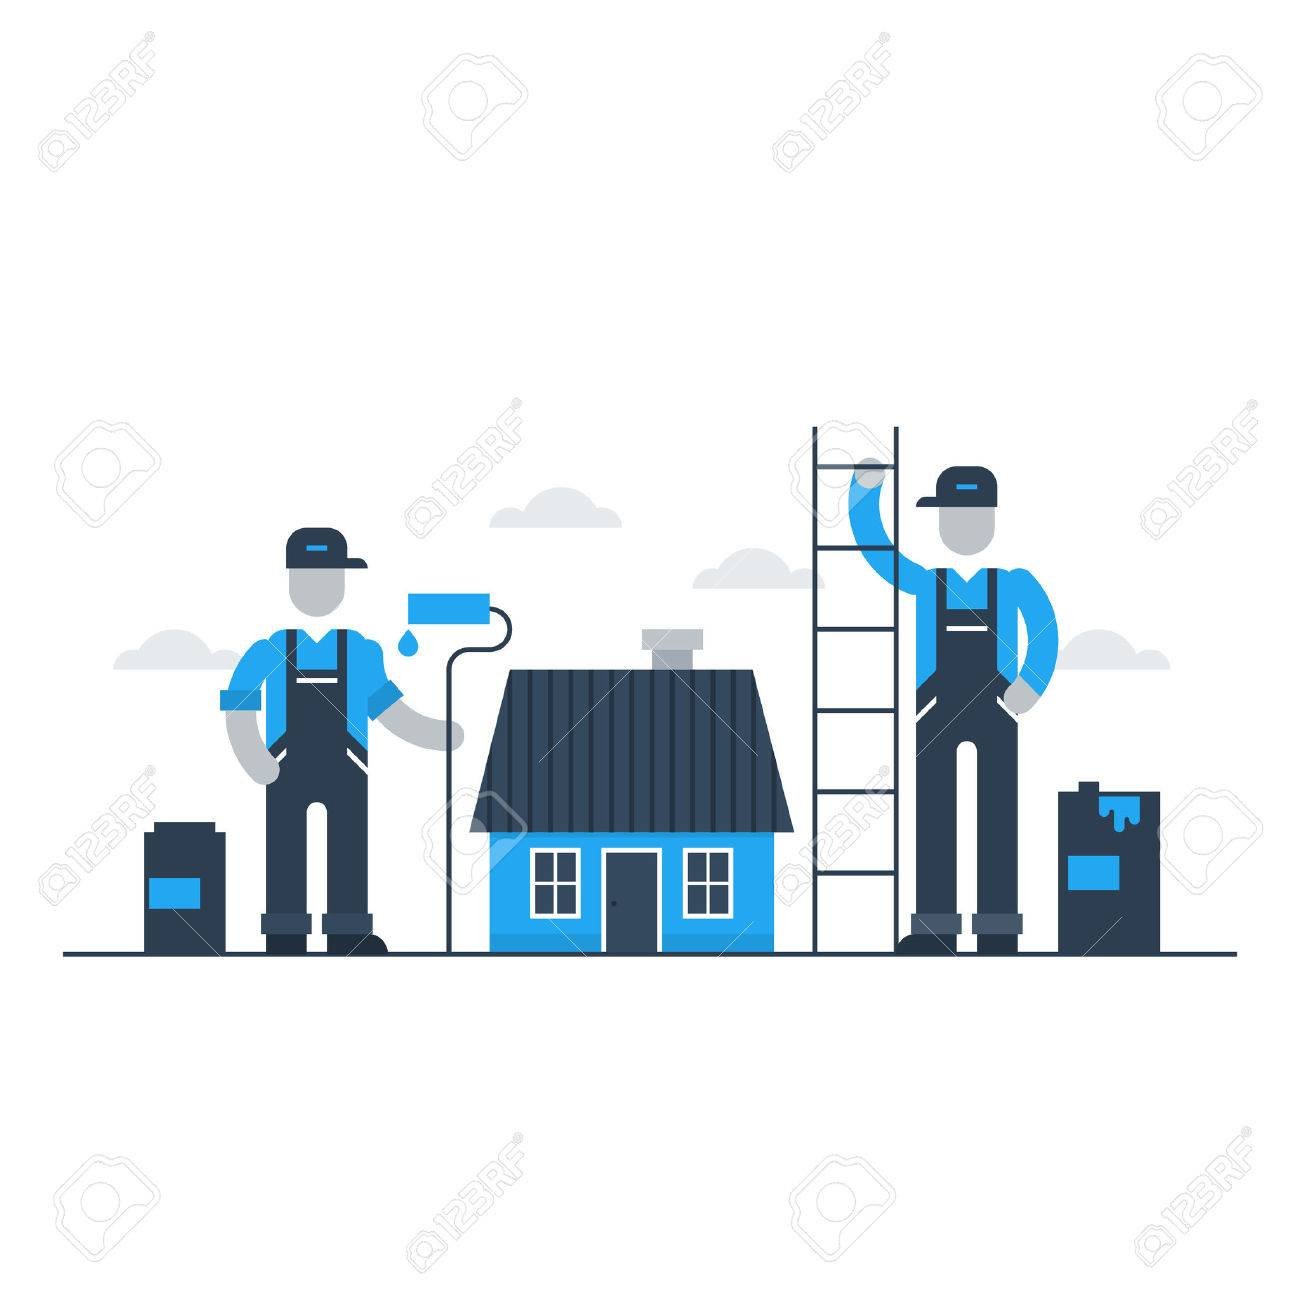 Home improvement and renovation services - 53250666